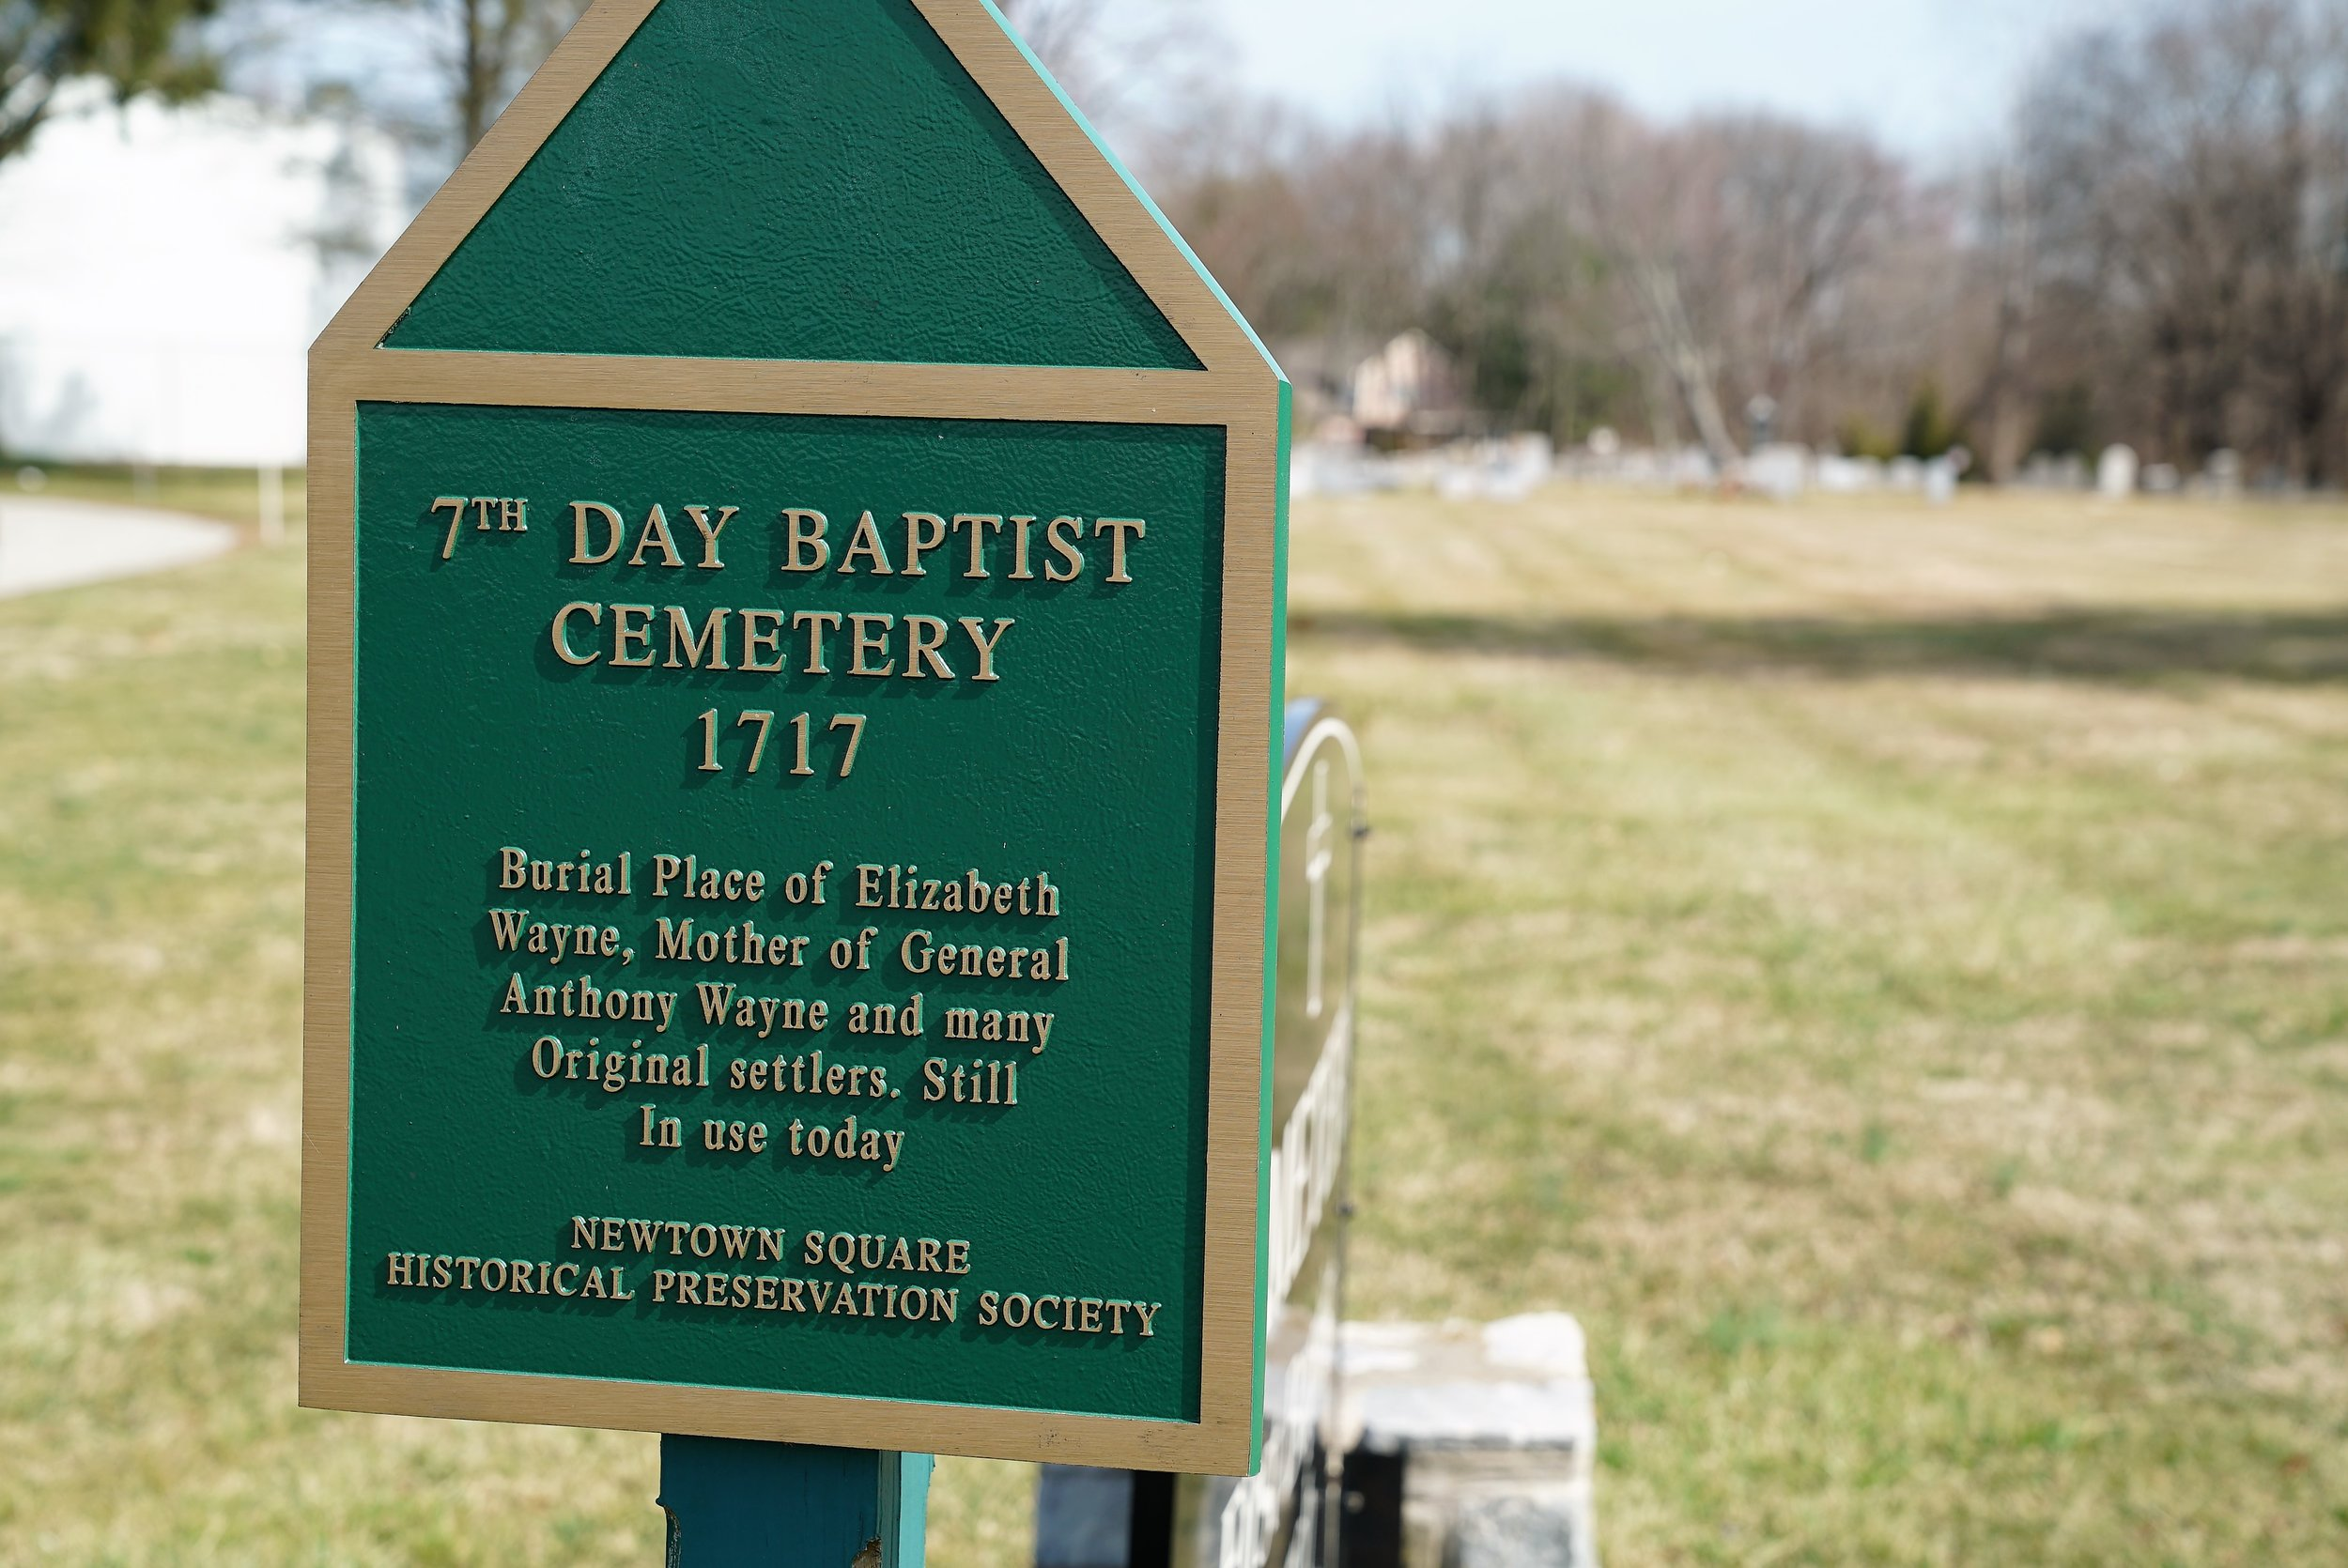 At the First Baptist Church Of Newtown Square Cemetery. (Newtown Square, Pennsylvania.)